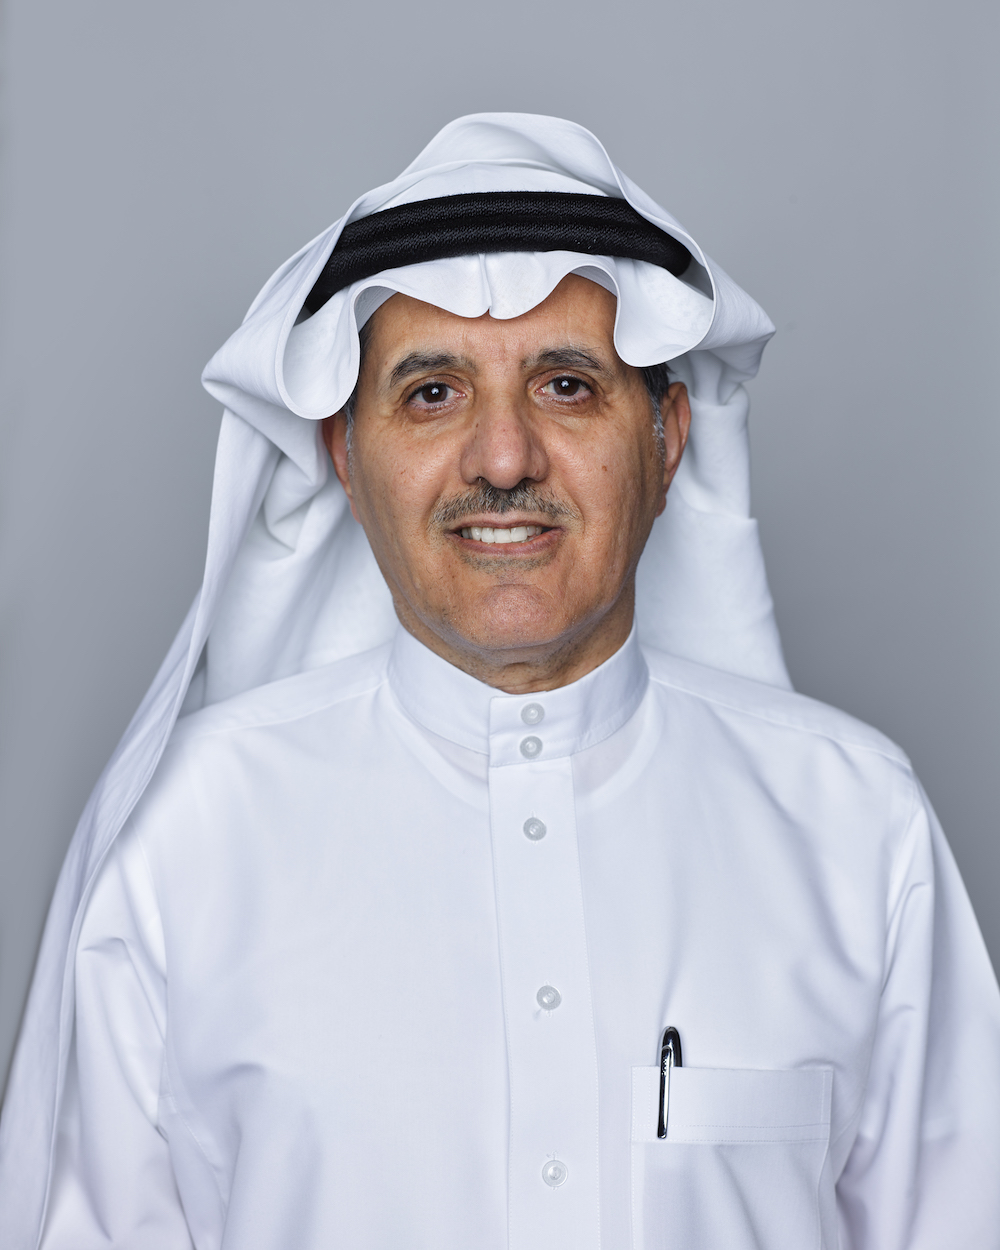 Mr. Yousef Saleh Abalkhail